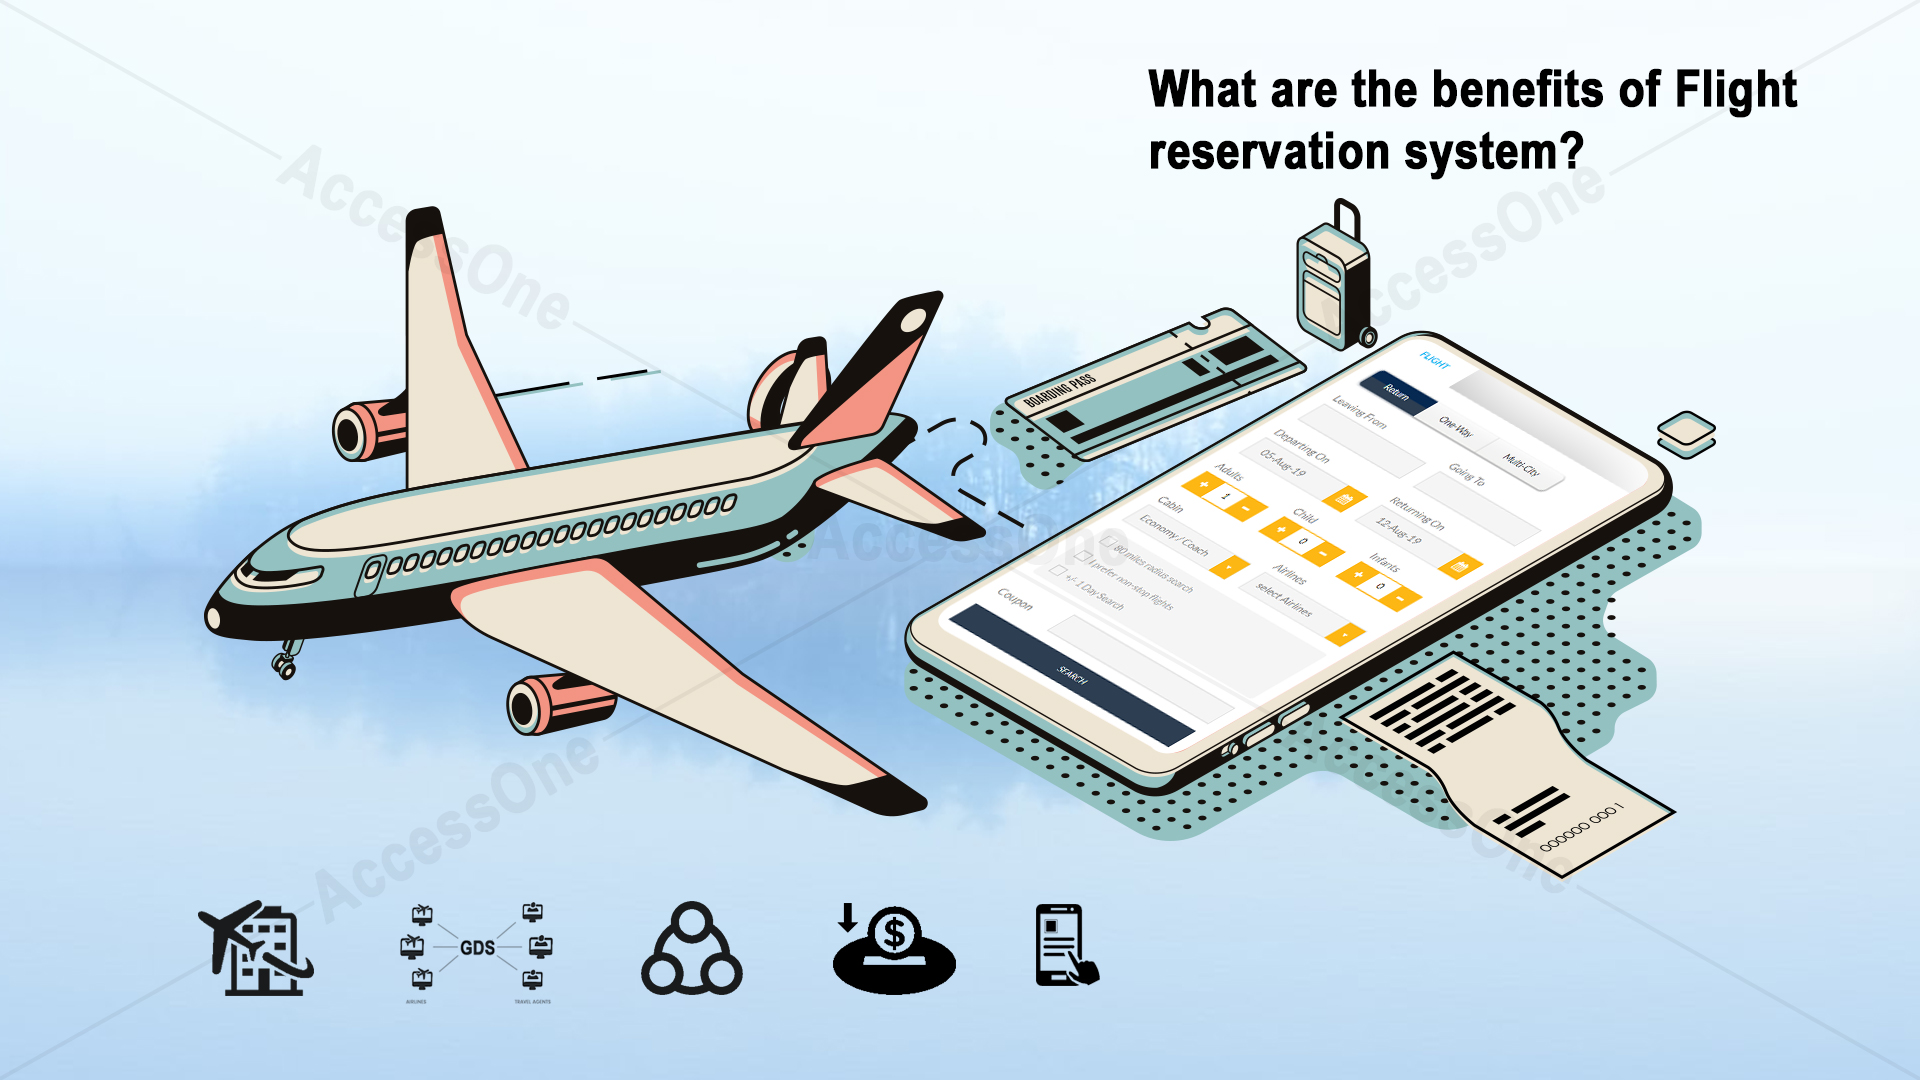 Airline reservation system: All you need to know